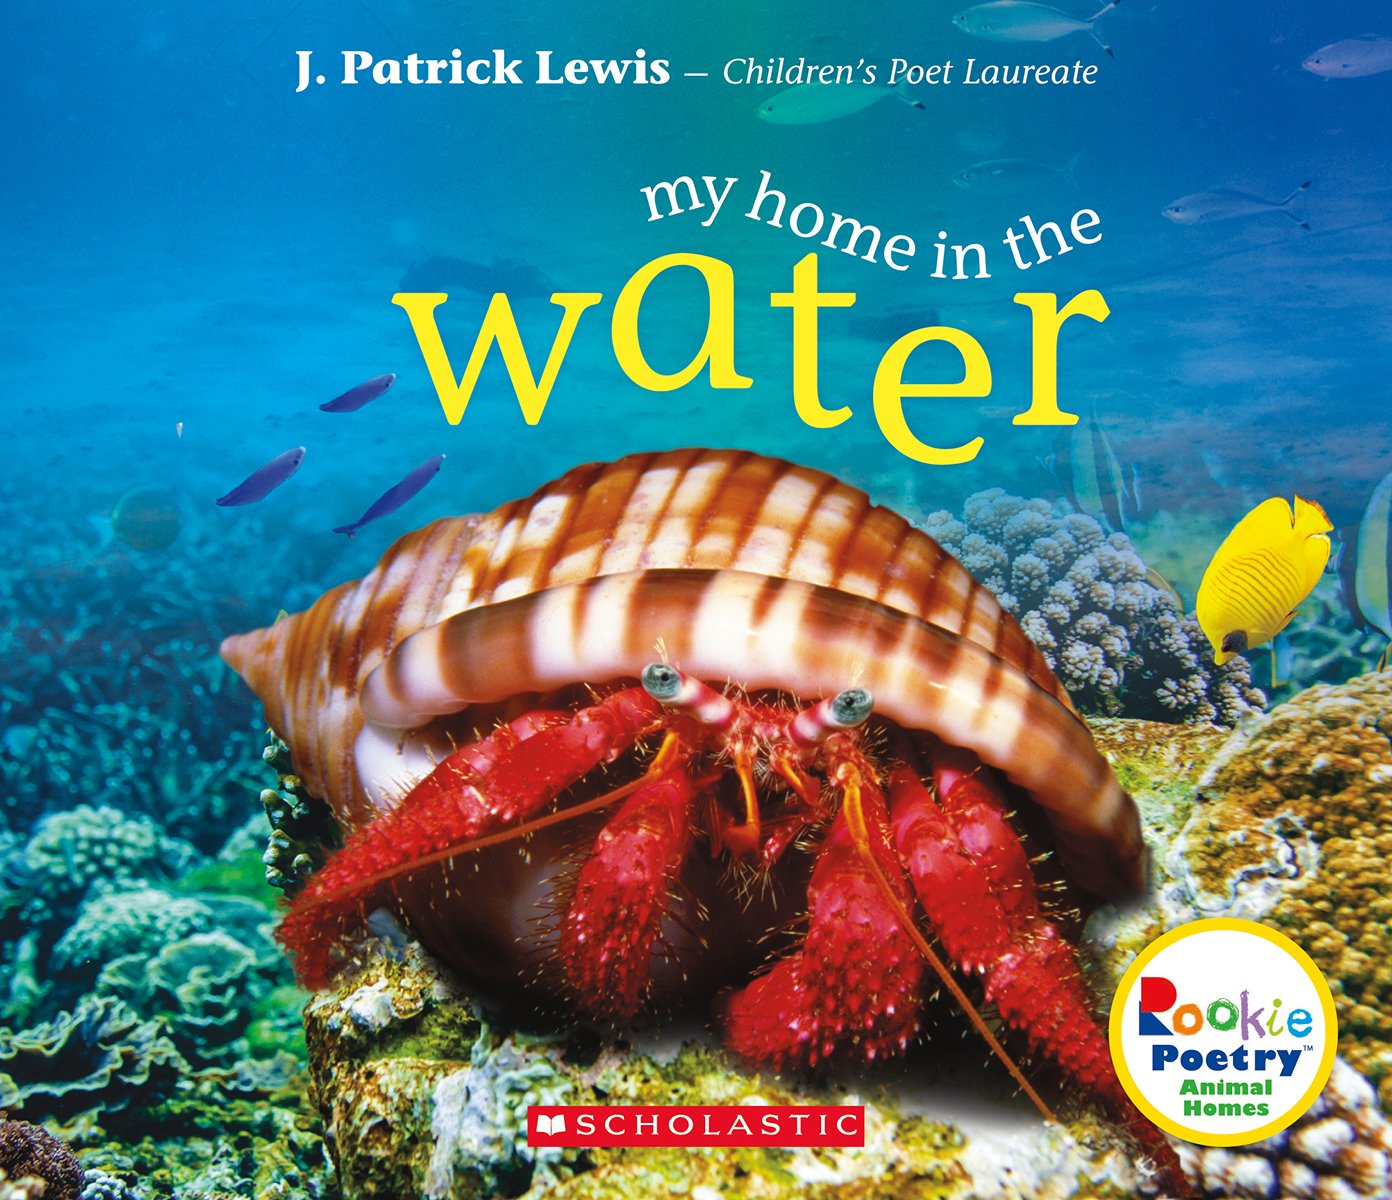 My home in the Water (Rookie Poetry, Animal Homes) pdf